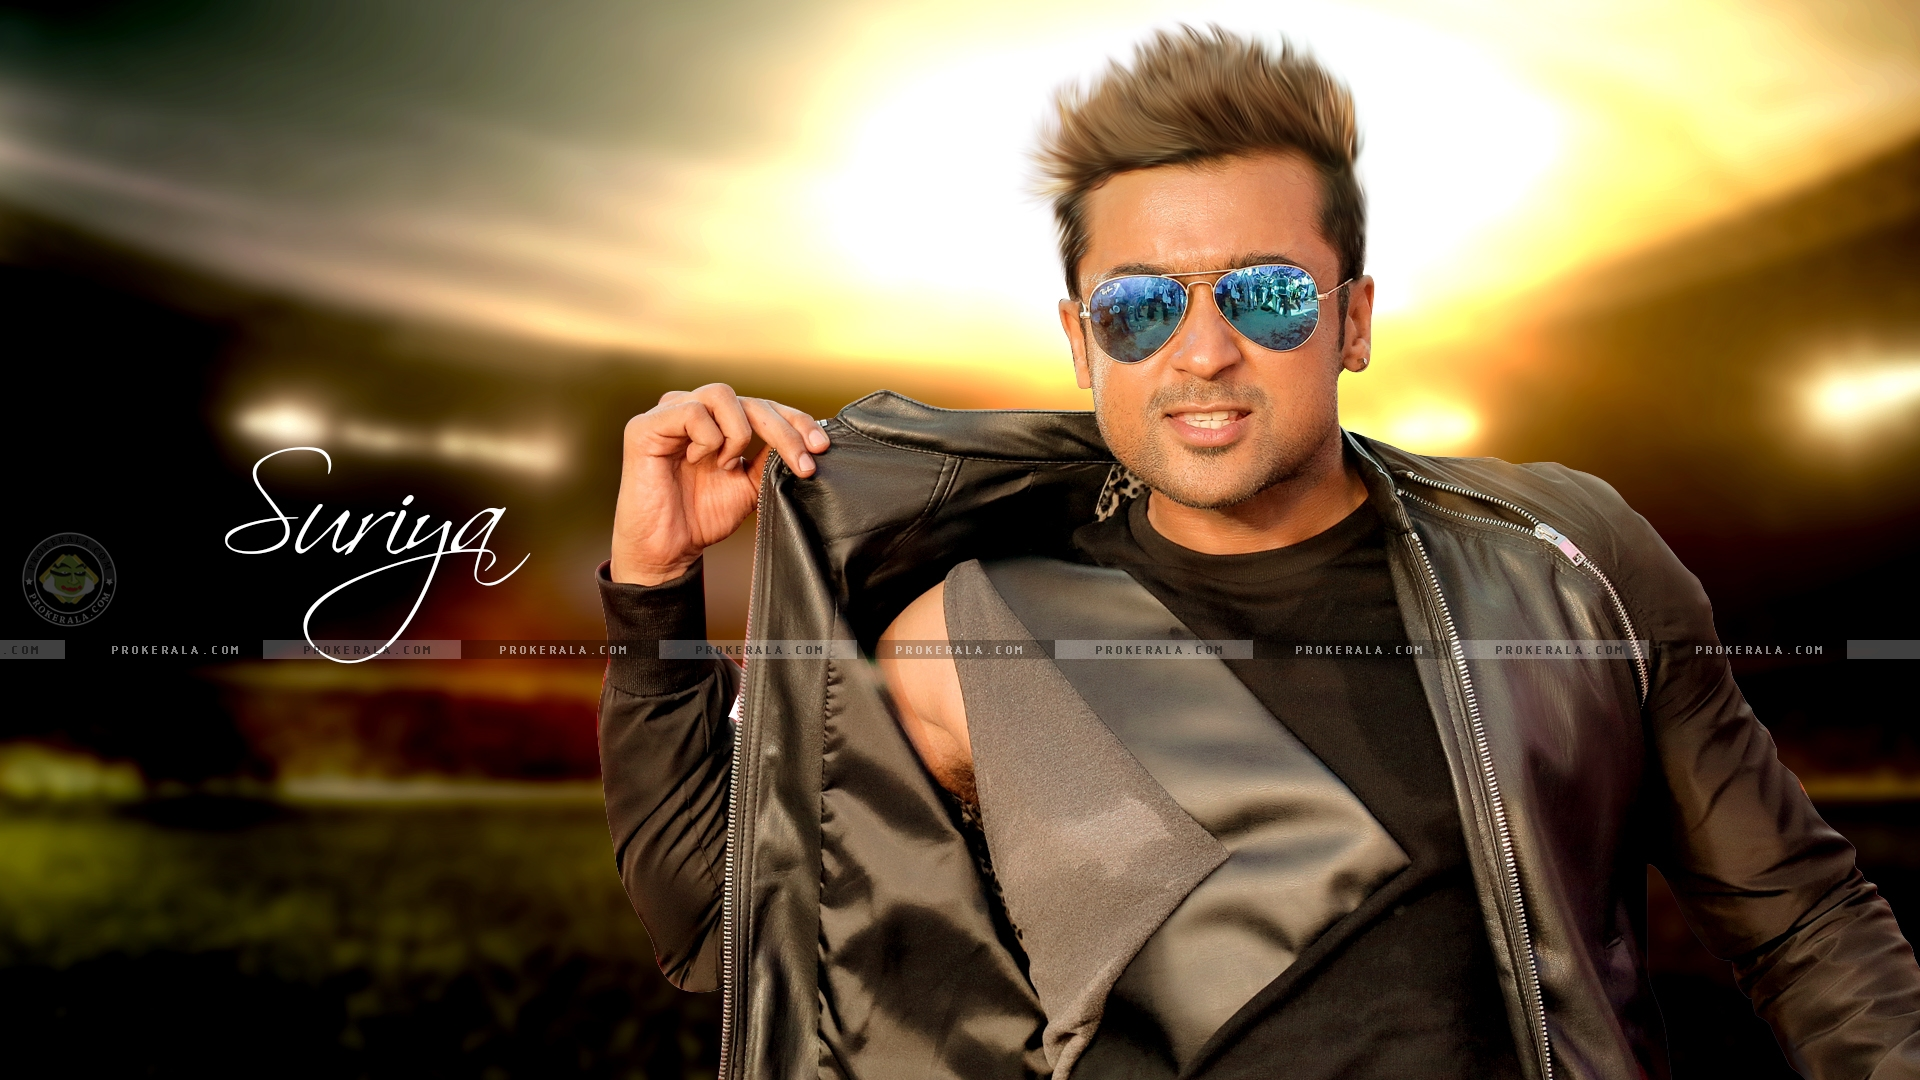 download free entertainment wallpaper surya to your mobile